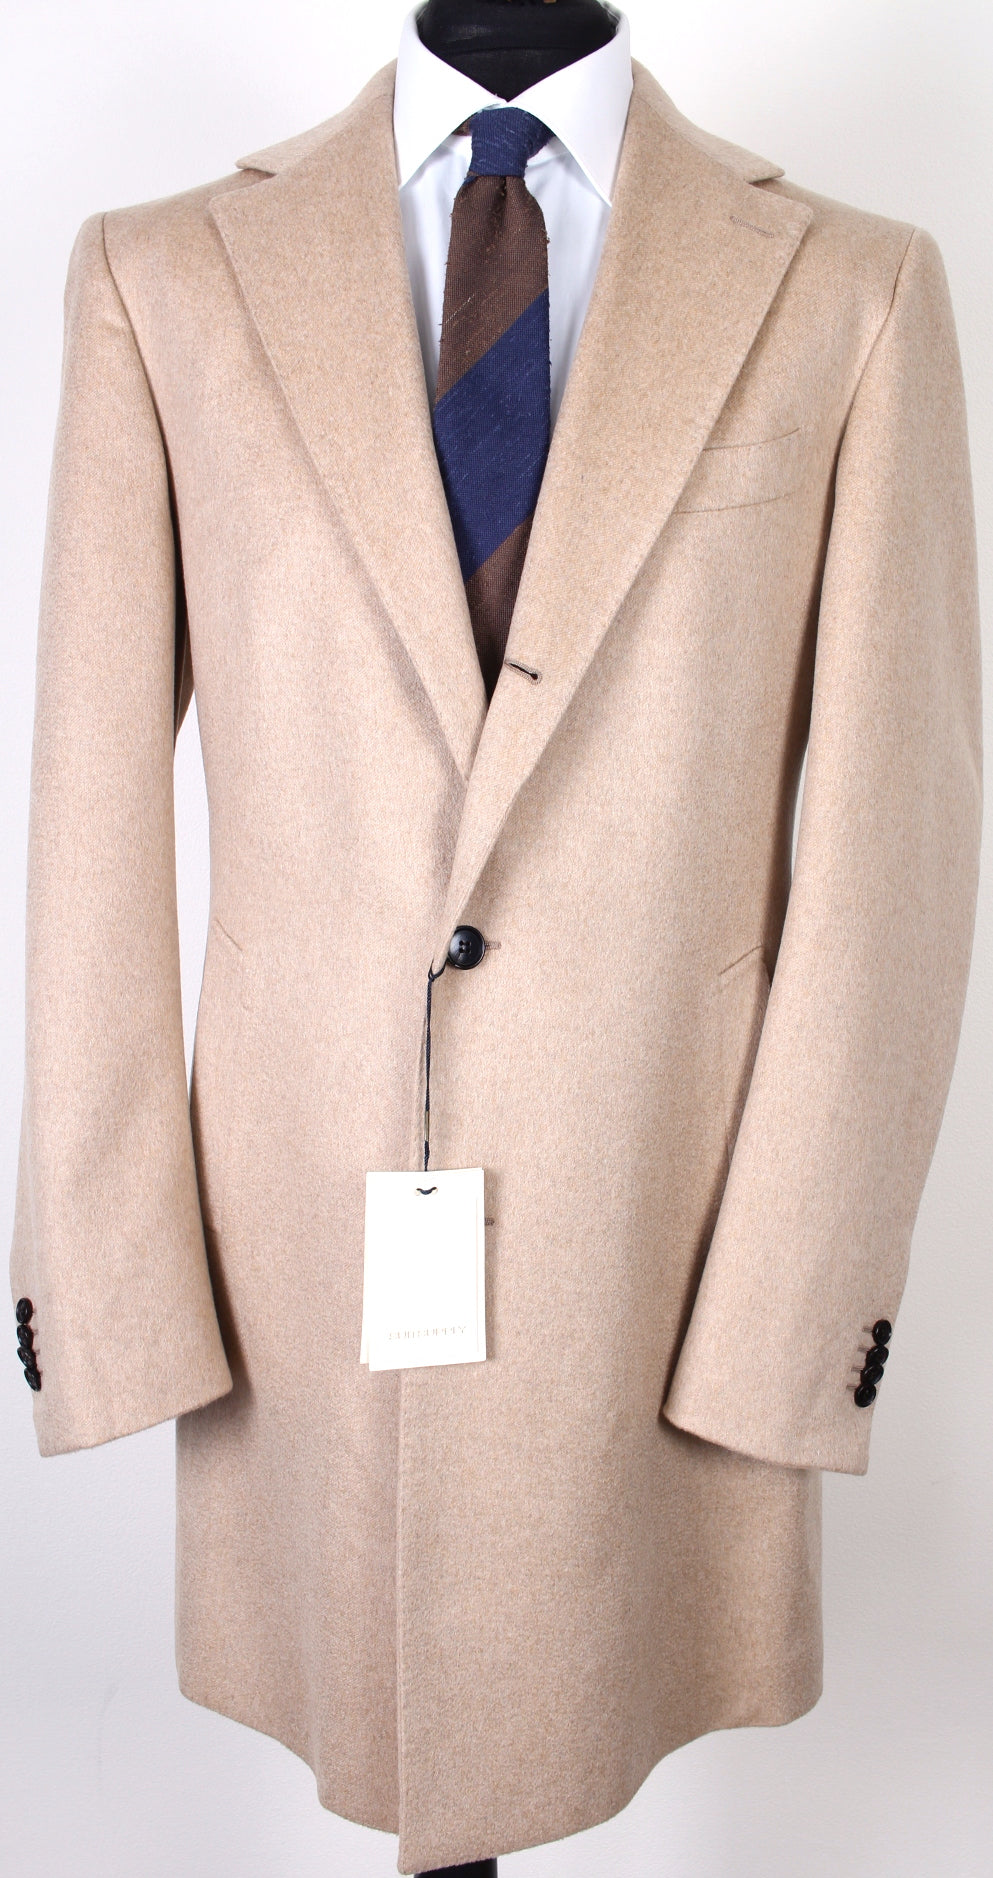 New Suitsupply Vincenza Light Brown 100% Cashmere Coat - Size 44L